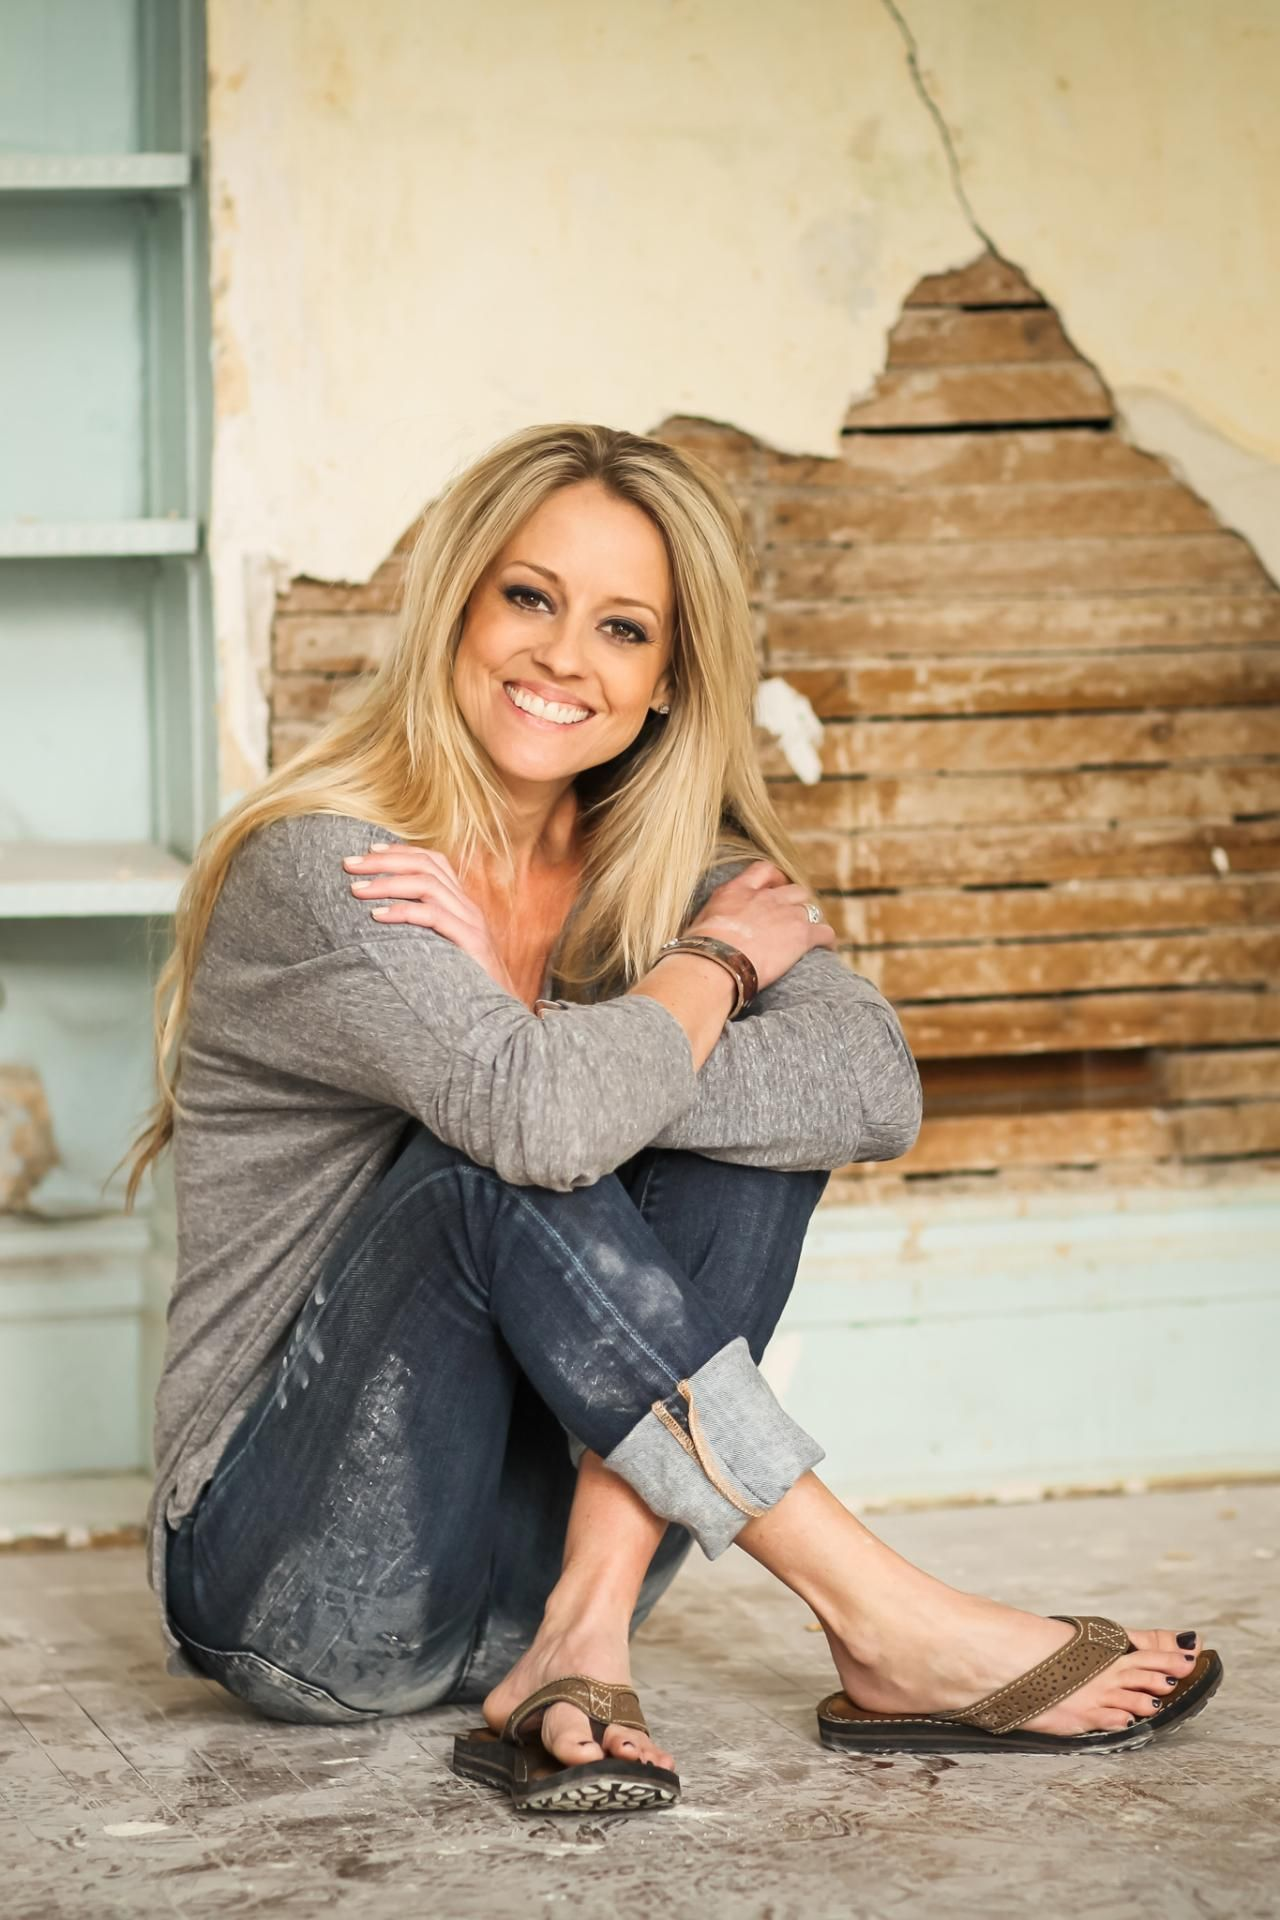 photos | rehab addict | hgtv | nicole curtis rehab addict